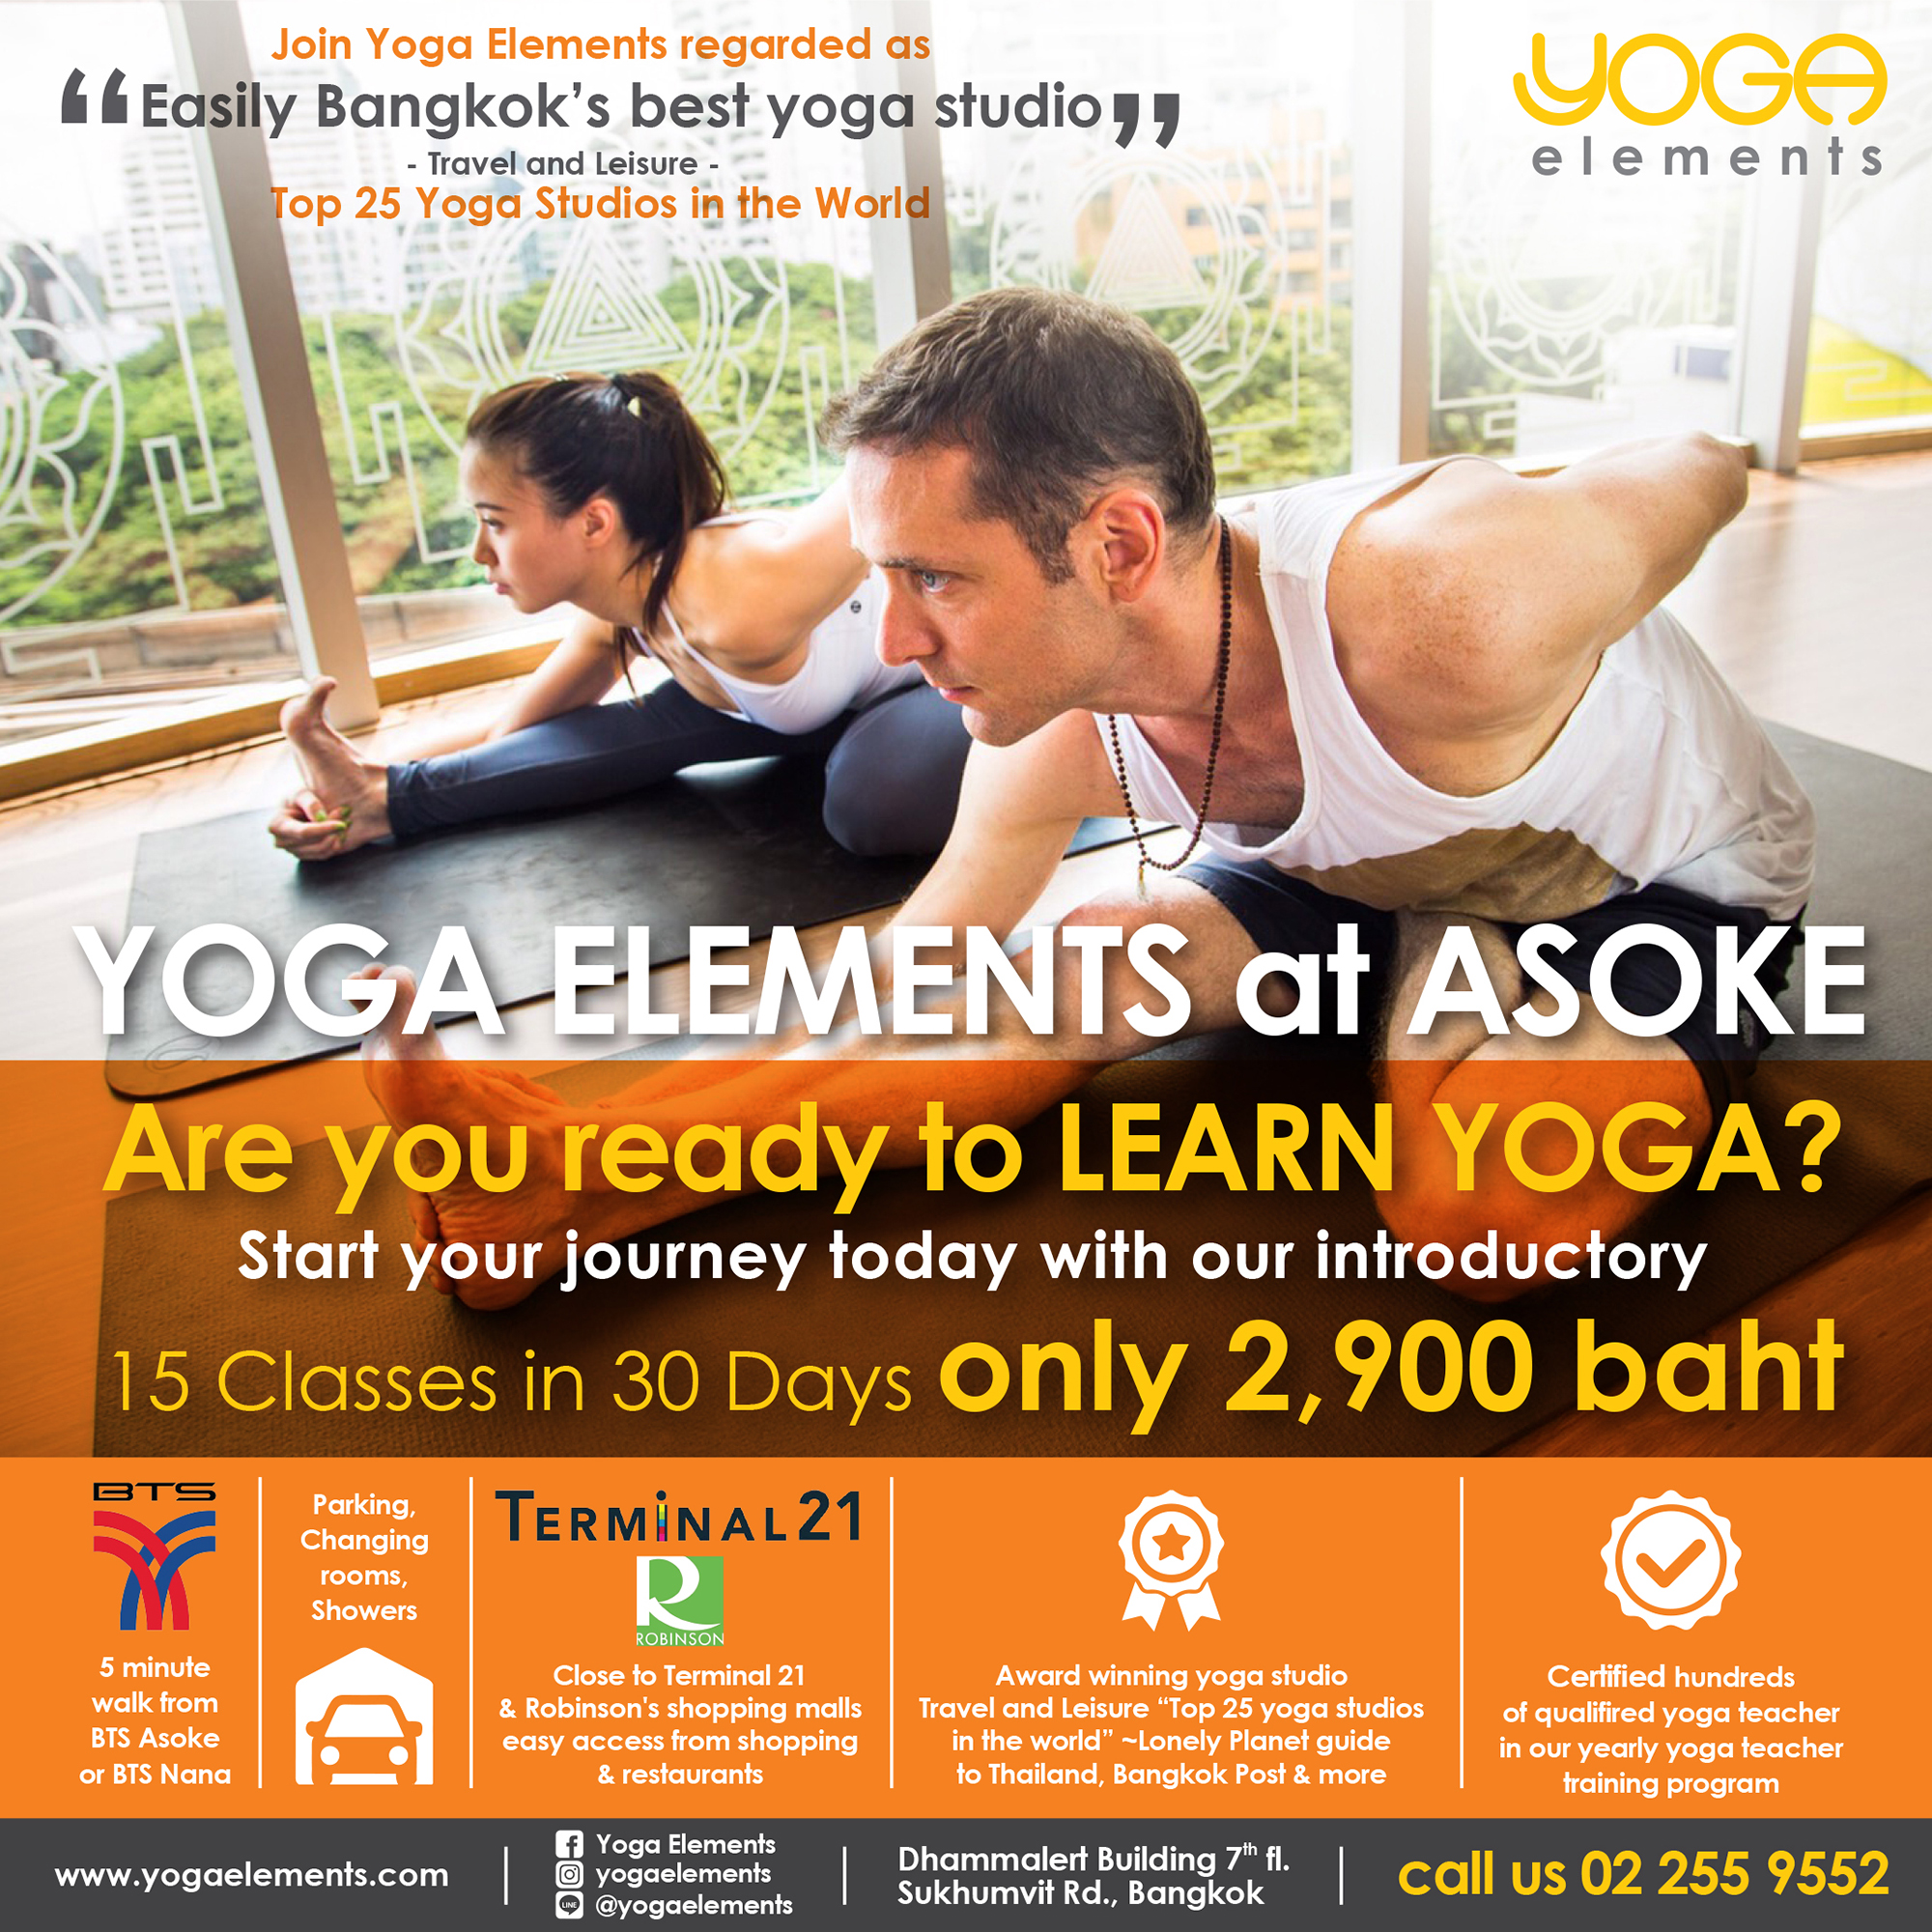 17905-Are-you-ready-to-LEARN-YOGA.jpg